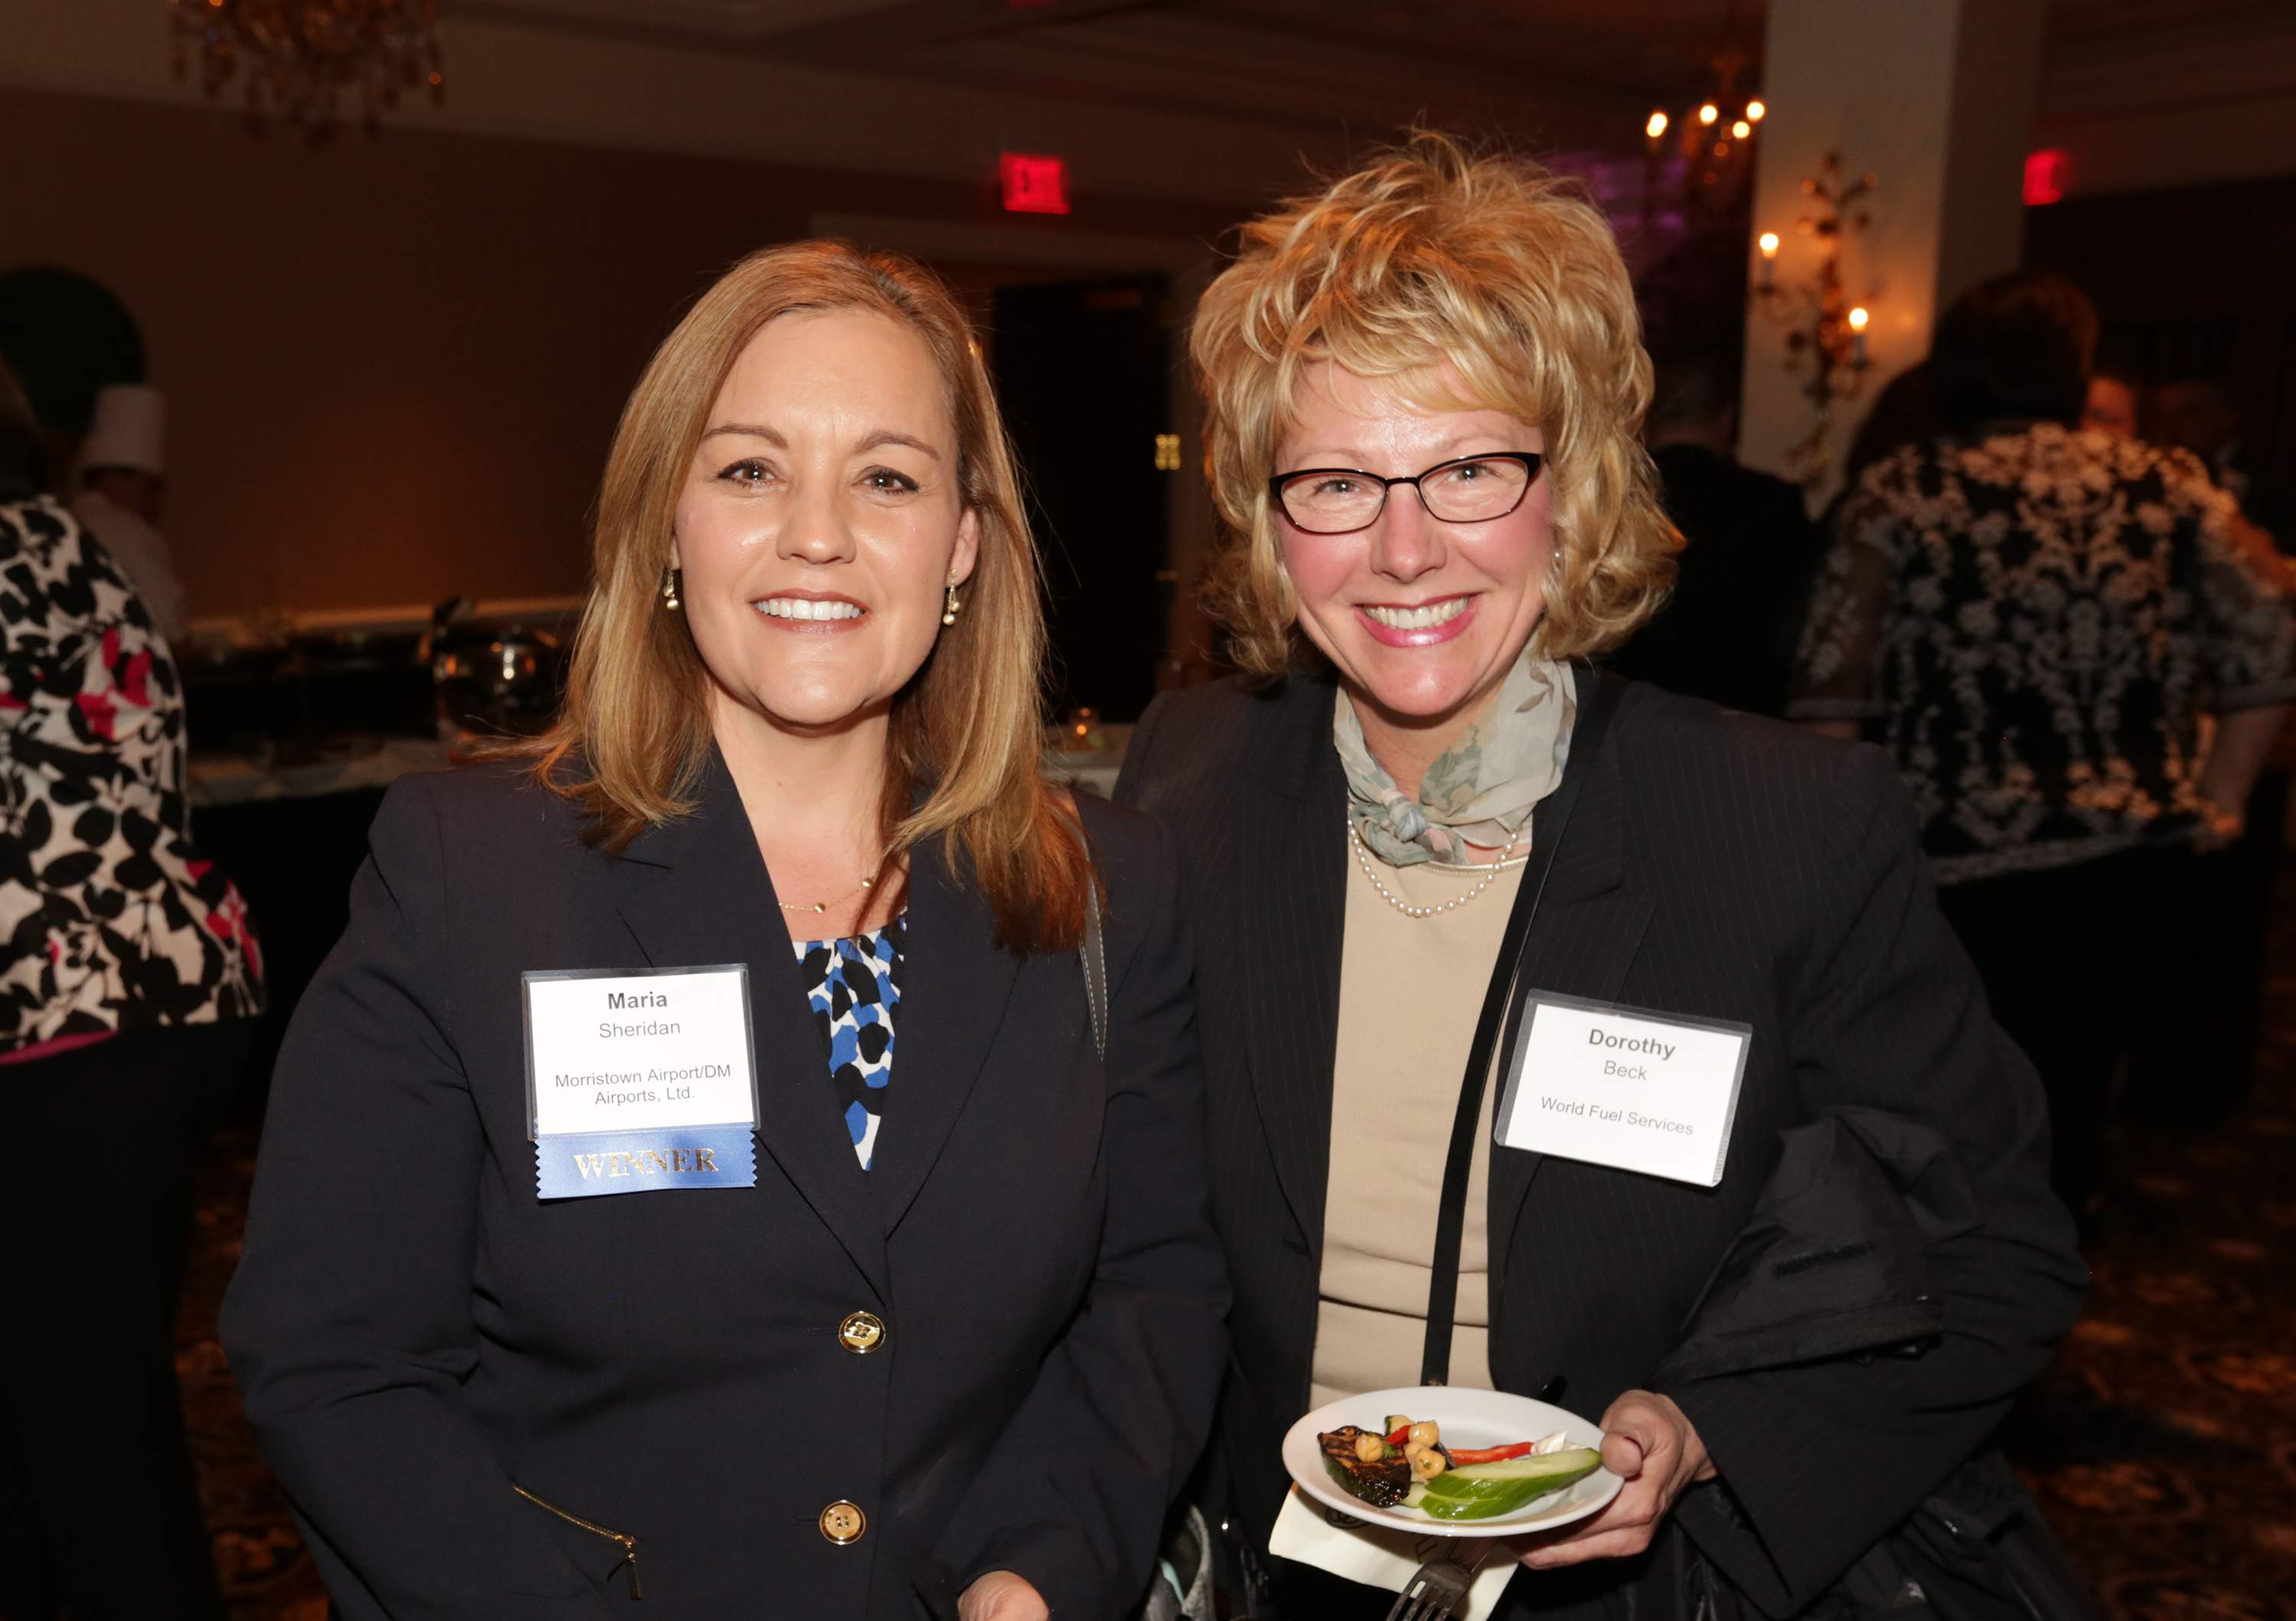 Pictured are Maria Sheridan of Morristown Airport/DM Airports, Ltd. (left) and Dorothy Beck of World Fuel Services. Sheridan was a Best 50 Women in Business honoree!